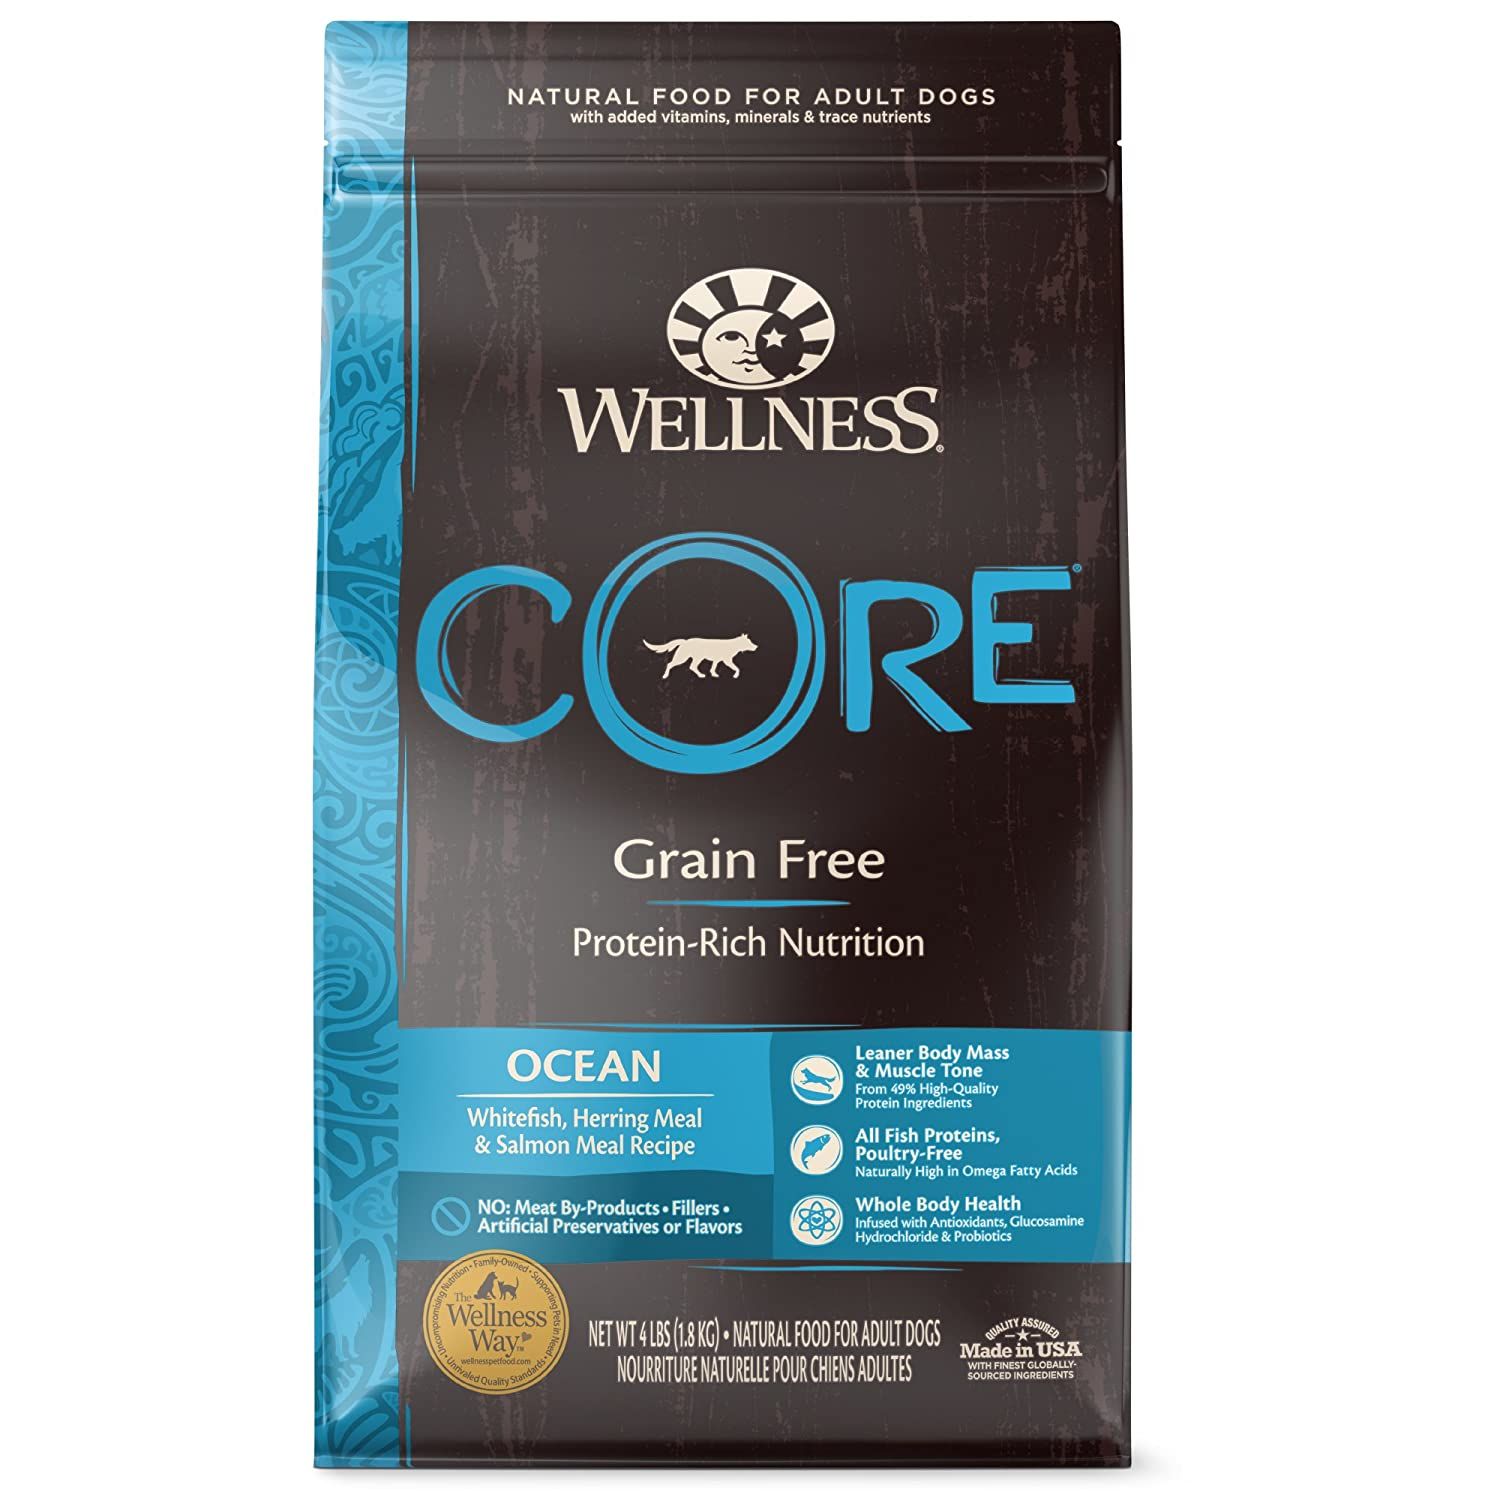 4-Pound Bag Wellness CORE Natural Grain Free Dry Dog Food, Ocean Whitefish, Herring & Salmon, 4-Pound Bag